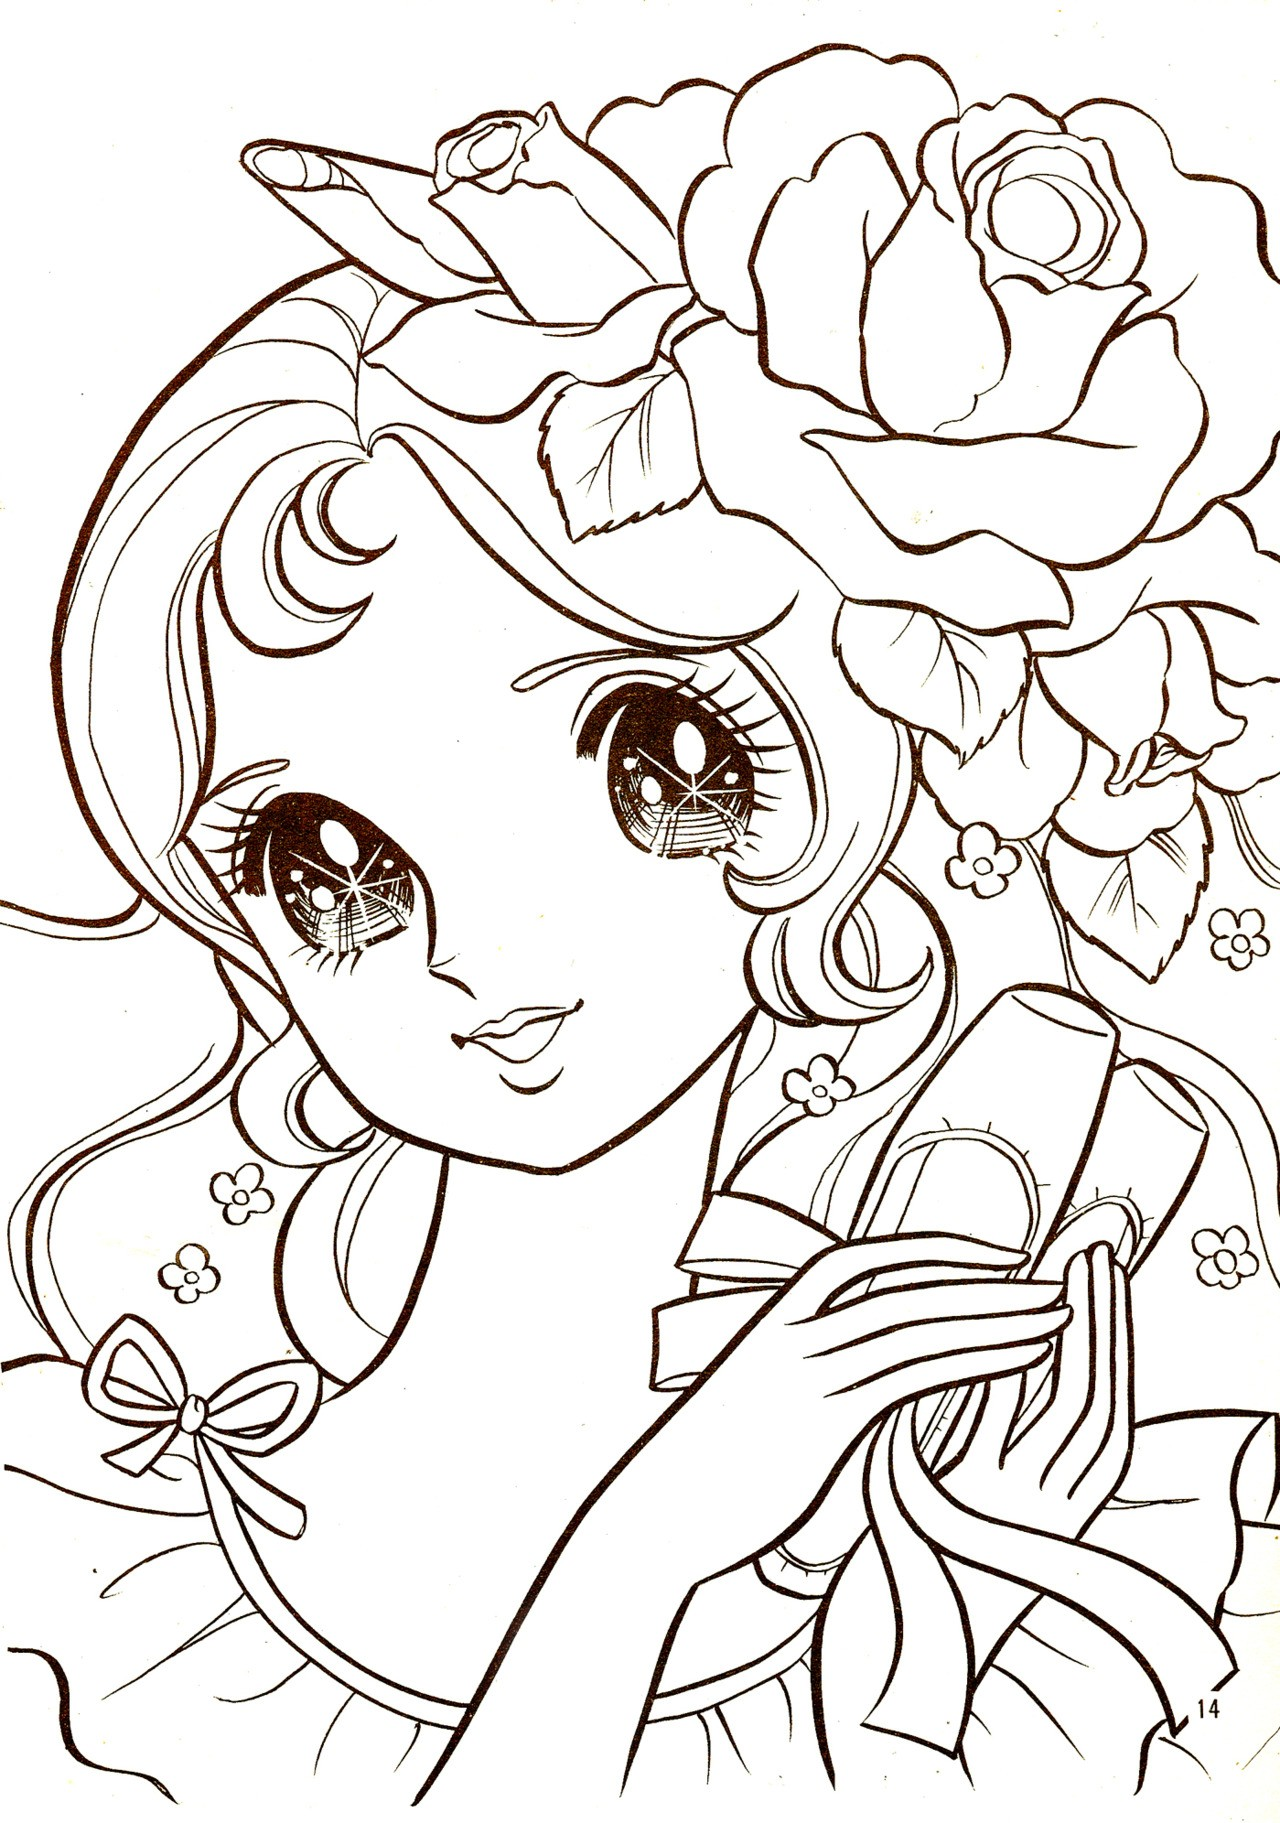 1280x1823 Manga Naruto Coloring Pages For Kids New Cute Manga Girl Coloring